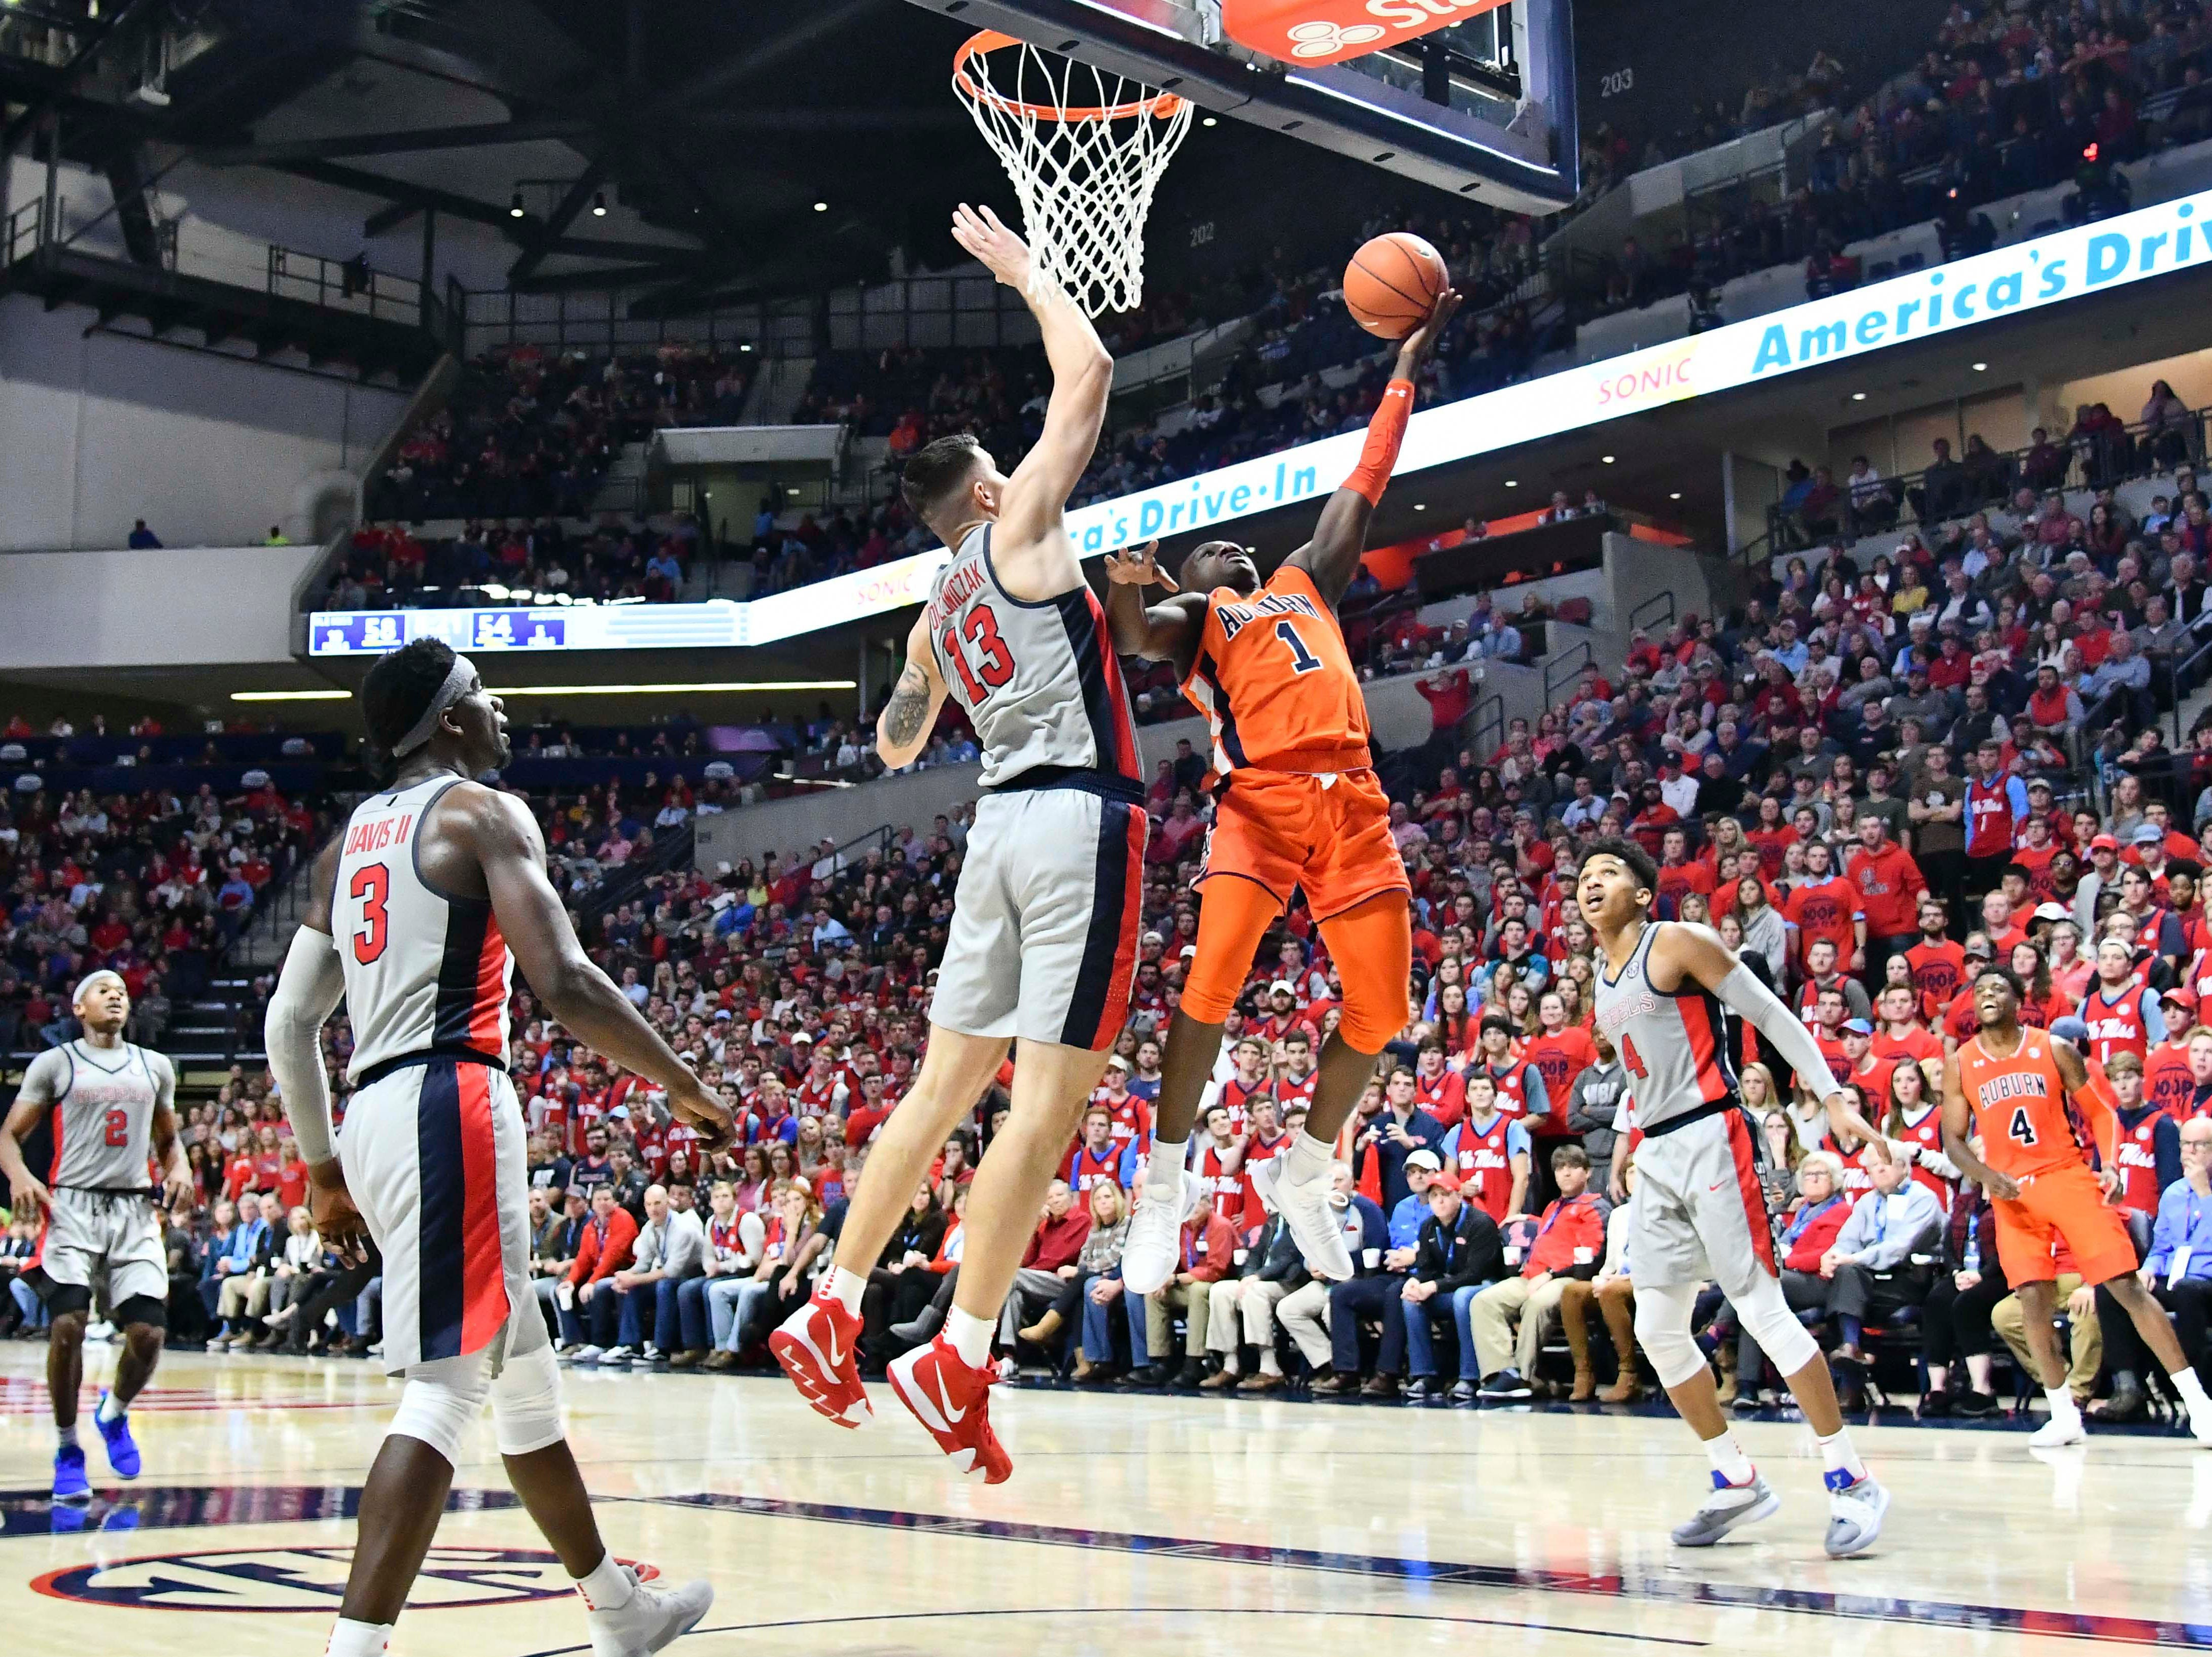 Jan 9, 2019; Oxford, MS, USA; Auburn Tigers guard Jared Harper (1) goes up for a shot against Mississippi Rebels center Dominik Olejniczak (13) during the second half at The Pavilion at Ole Miss. Mandatory Credit: Matt Bush-USA TODAY Sports